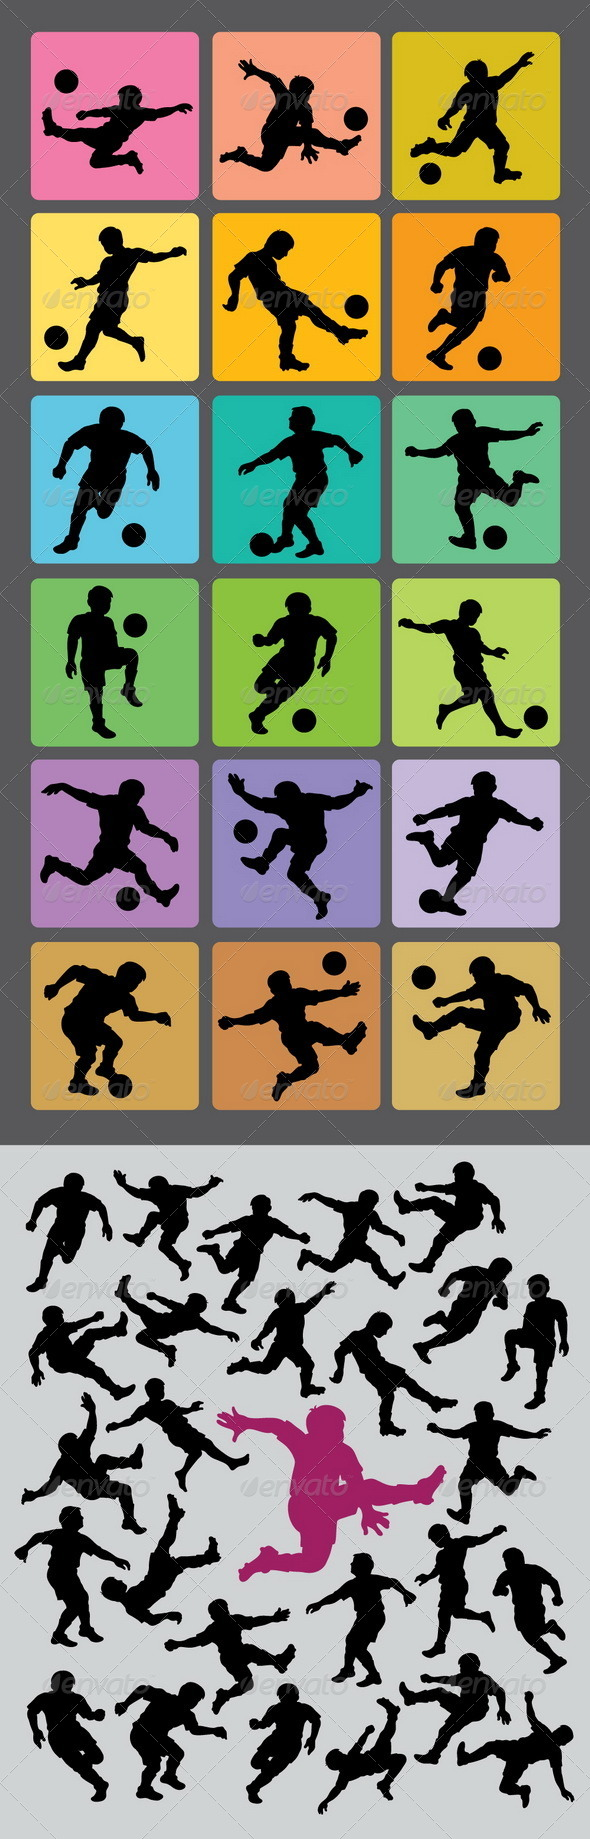 GraphicRiver Soccer Boy Silhouettes 4491471